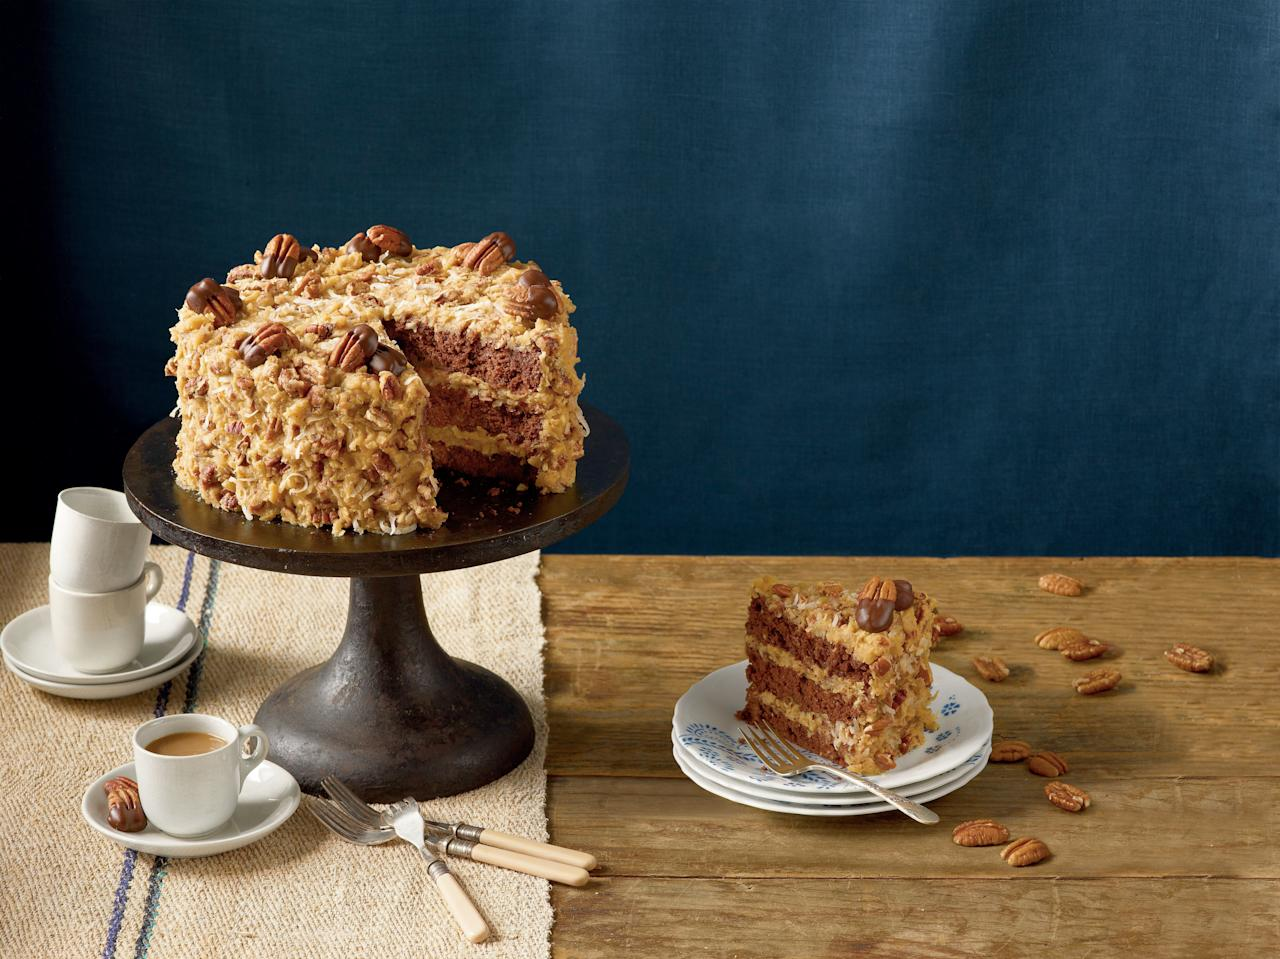 """<p>Contrary to what you may have thought, <a rel=""""nofollow"""" href=""""http://www.myrecipes.com/recipe/mamas-german-chocolate-cake"""">German Chocolate Cake</a> has nothing to do with the country of Germany. In 1957, the Dallas Morning Star published the first known recipe for German's Chocolate Cake (named after Sam German, who created a baking chocolate for Baker's Chocolate Company in the 1850s). The chocolate-coconut confection blew up, as the recipe and photos of the cake spread across the country. Over time, the apostrope-S was dropped off of the name, leading to the famous title as it's known today.</p>"""